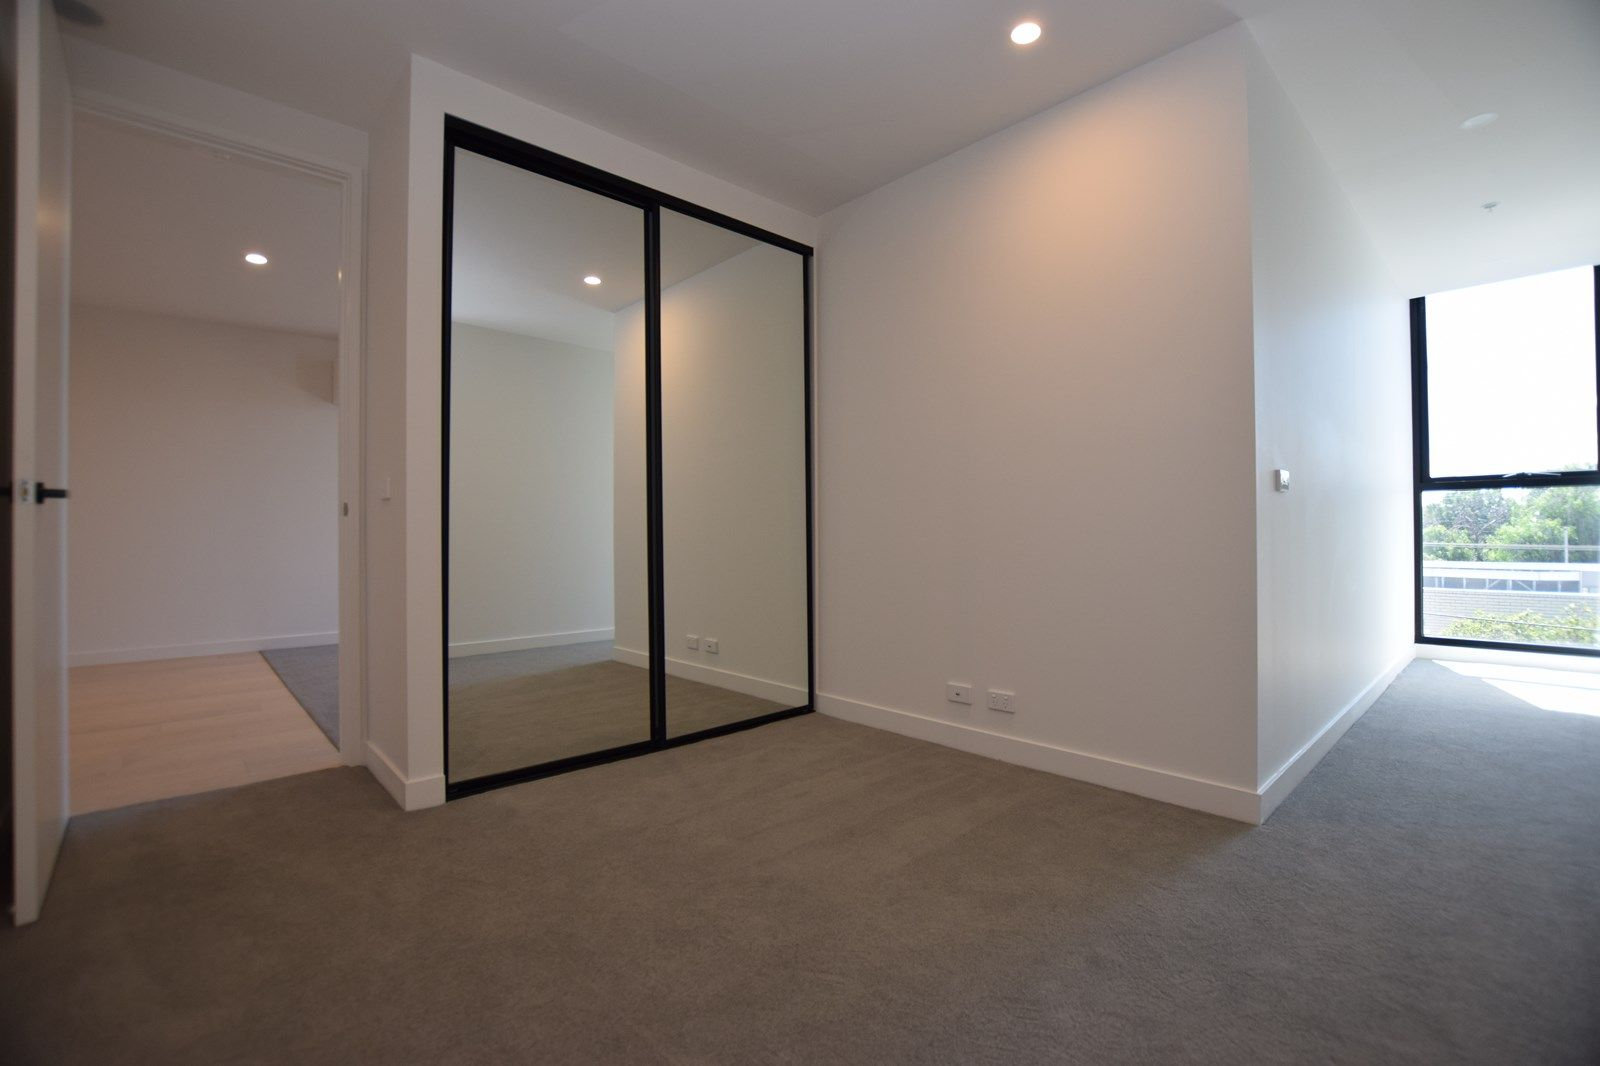 107/165 Gladstone Street, South Melbourne VIC 3205, Image 2